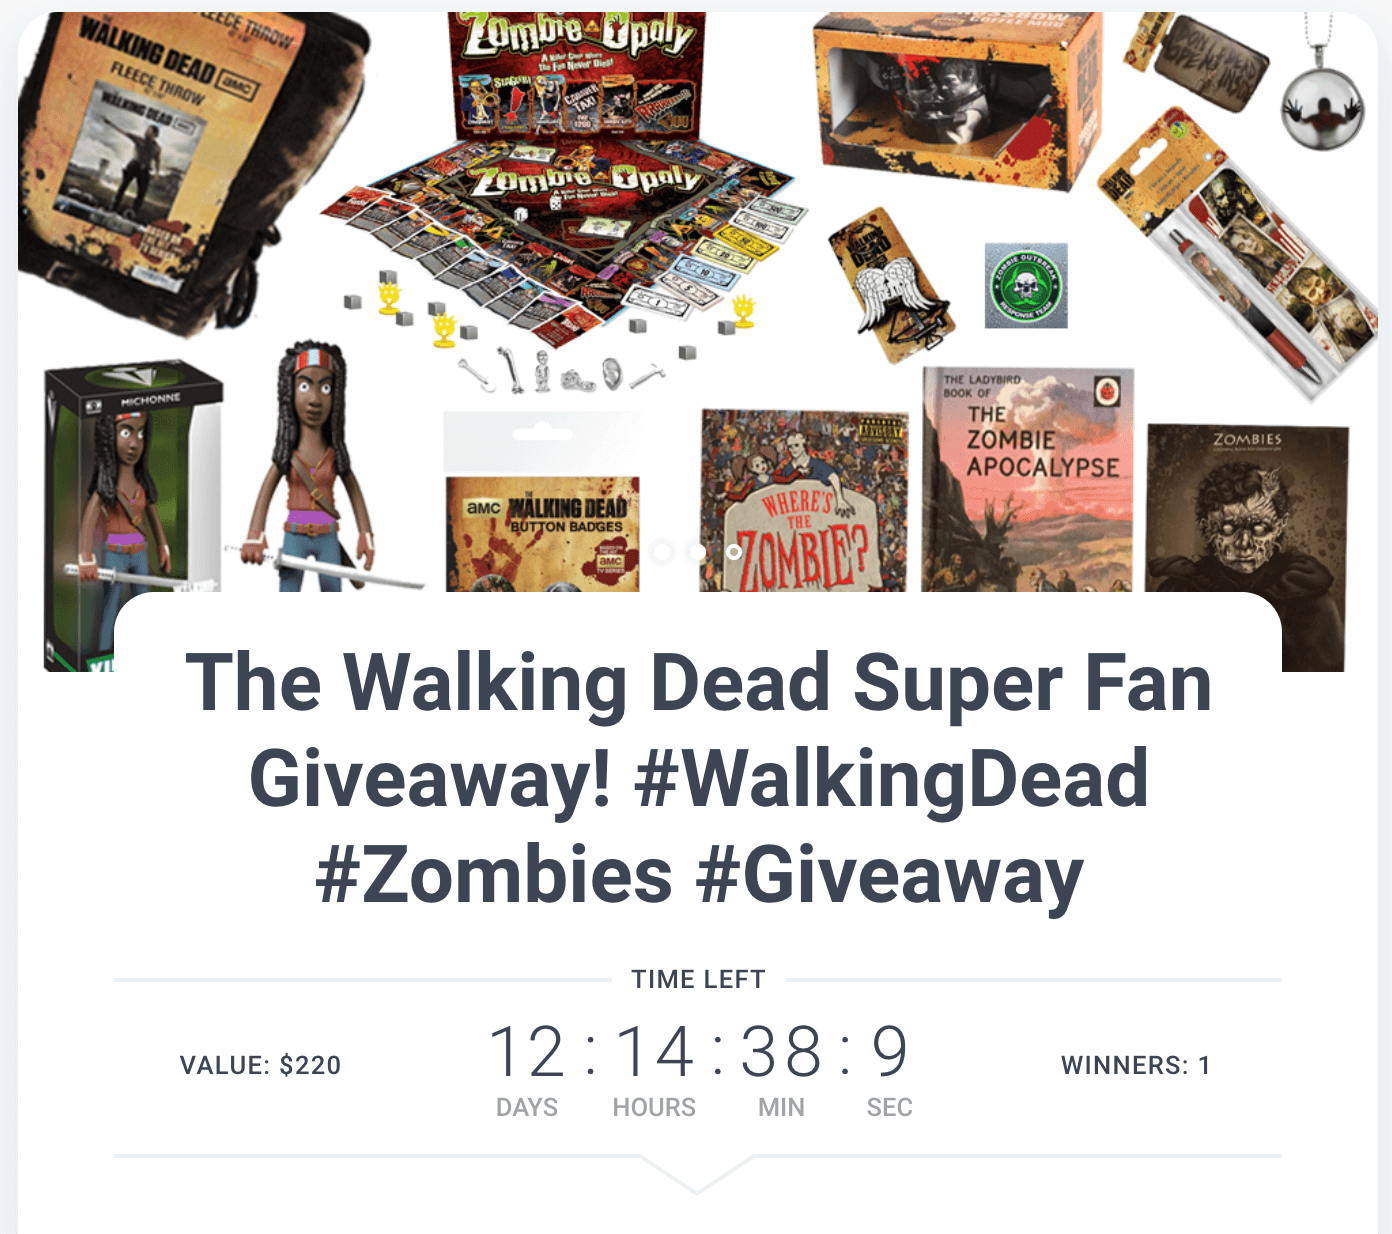 Screenshot showing a walking dead giveaway